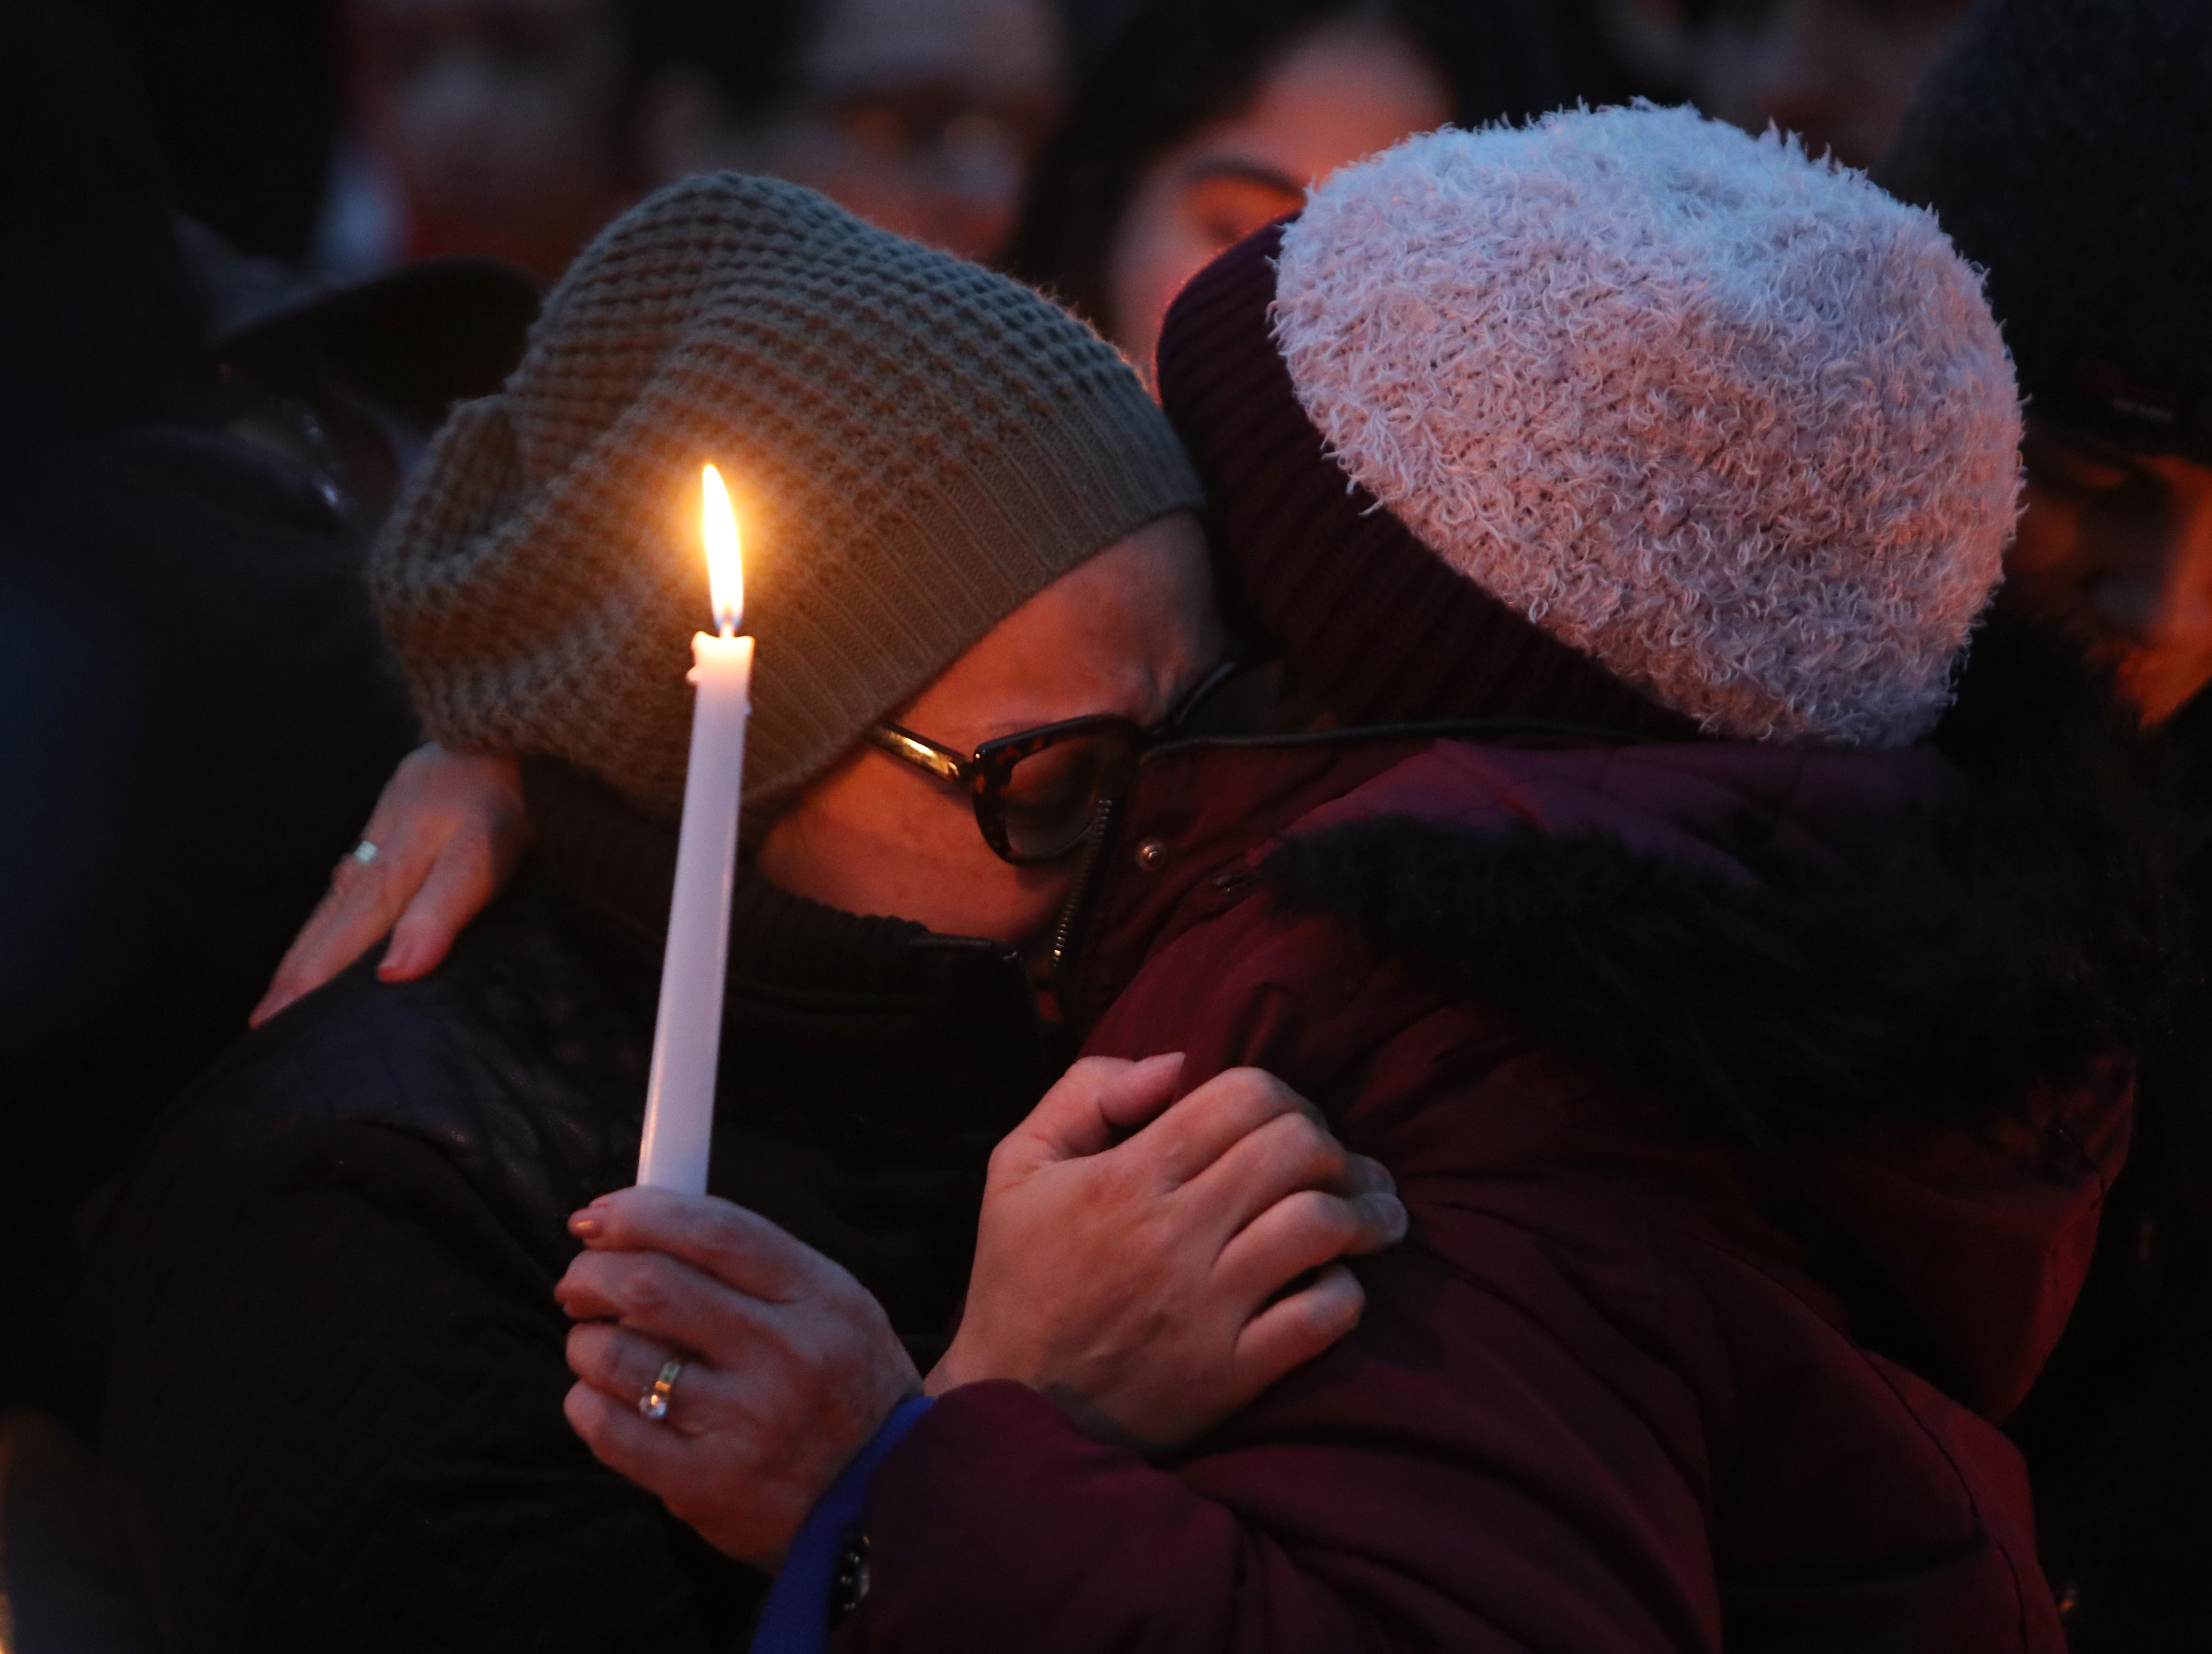 Norma Sanchez of New Rochelle, left, at a vigil for her daughter, Valerie Reyes at Glen Island Park in New Rochelle Feb. 7, 2019. Reyes body was found in Greenwich, Conn. Feb, 5.